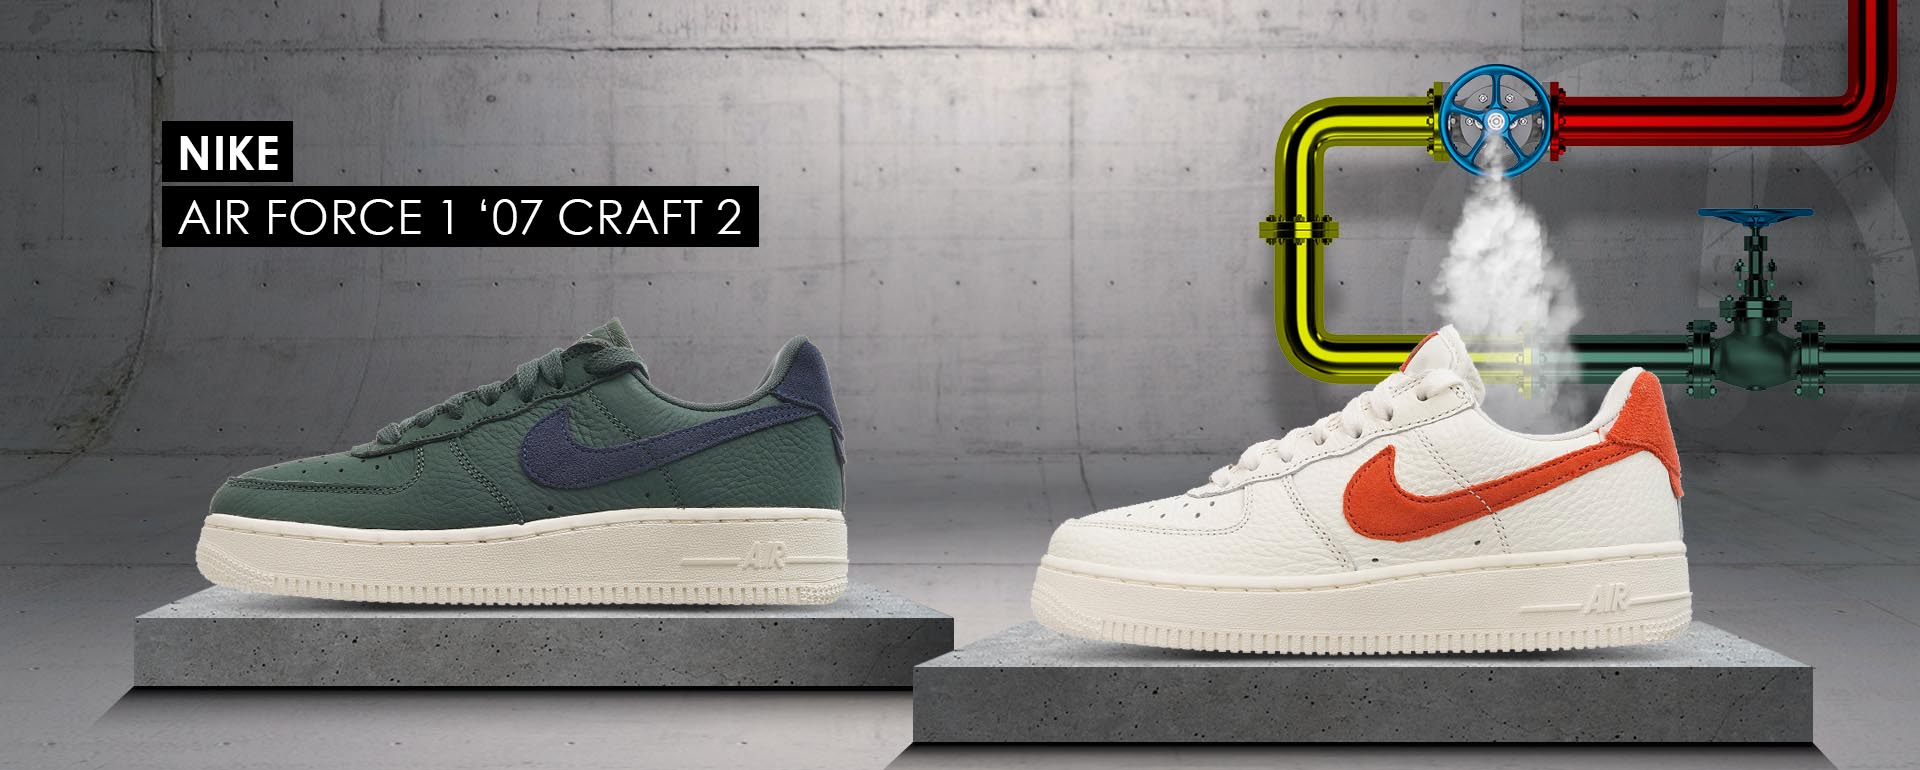 AIR FORCE 1 07 CRAFT 2